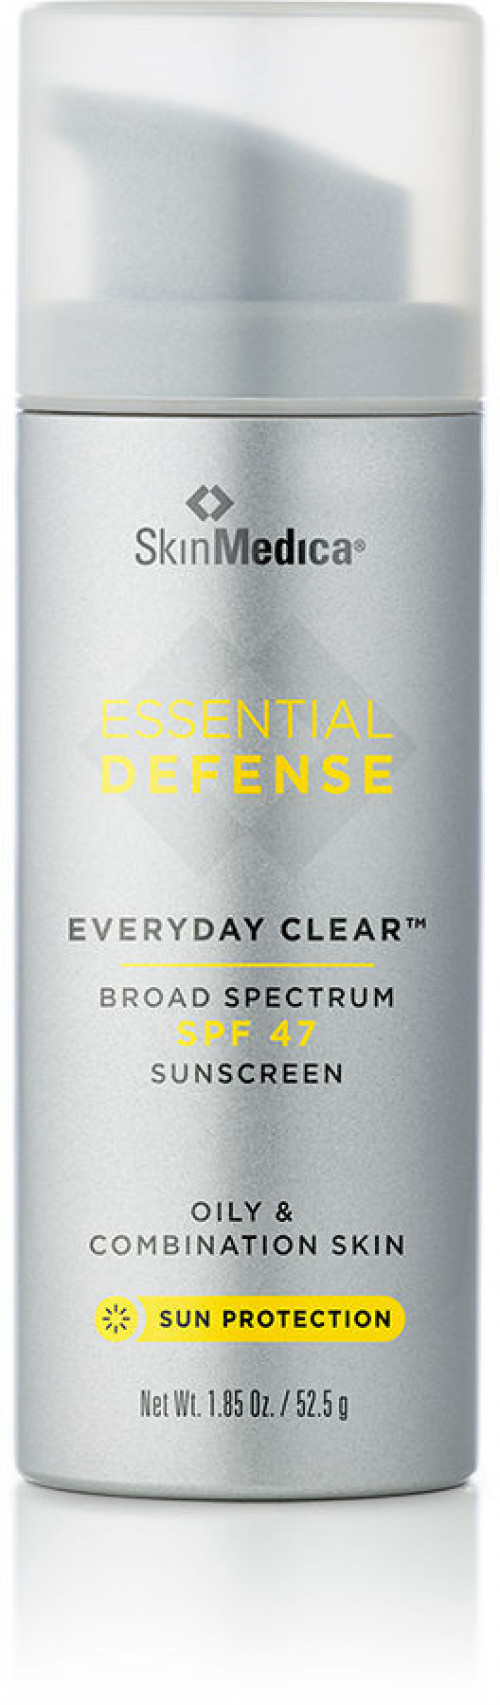 Essential Defense Everyday Clear Broad Spectrum SPF 47 by SkinMedica